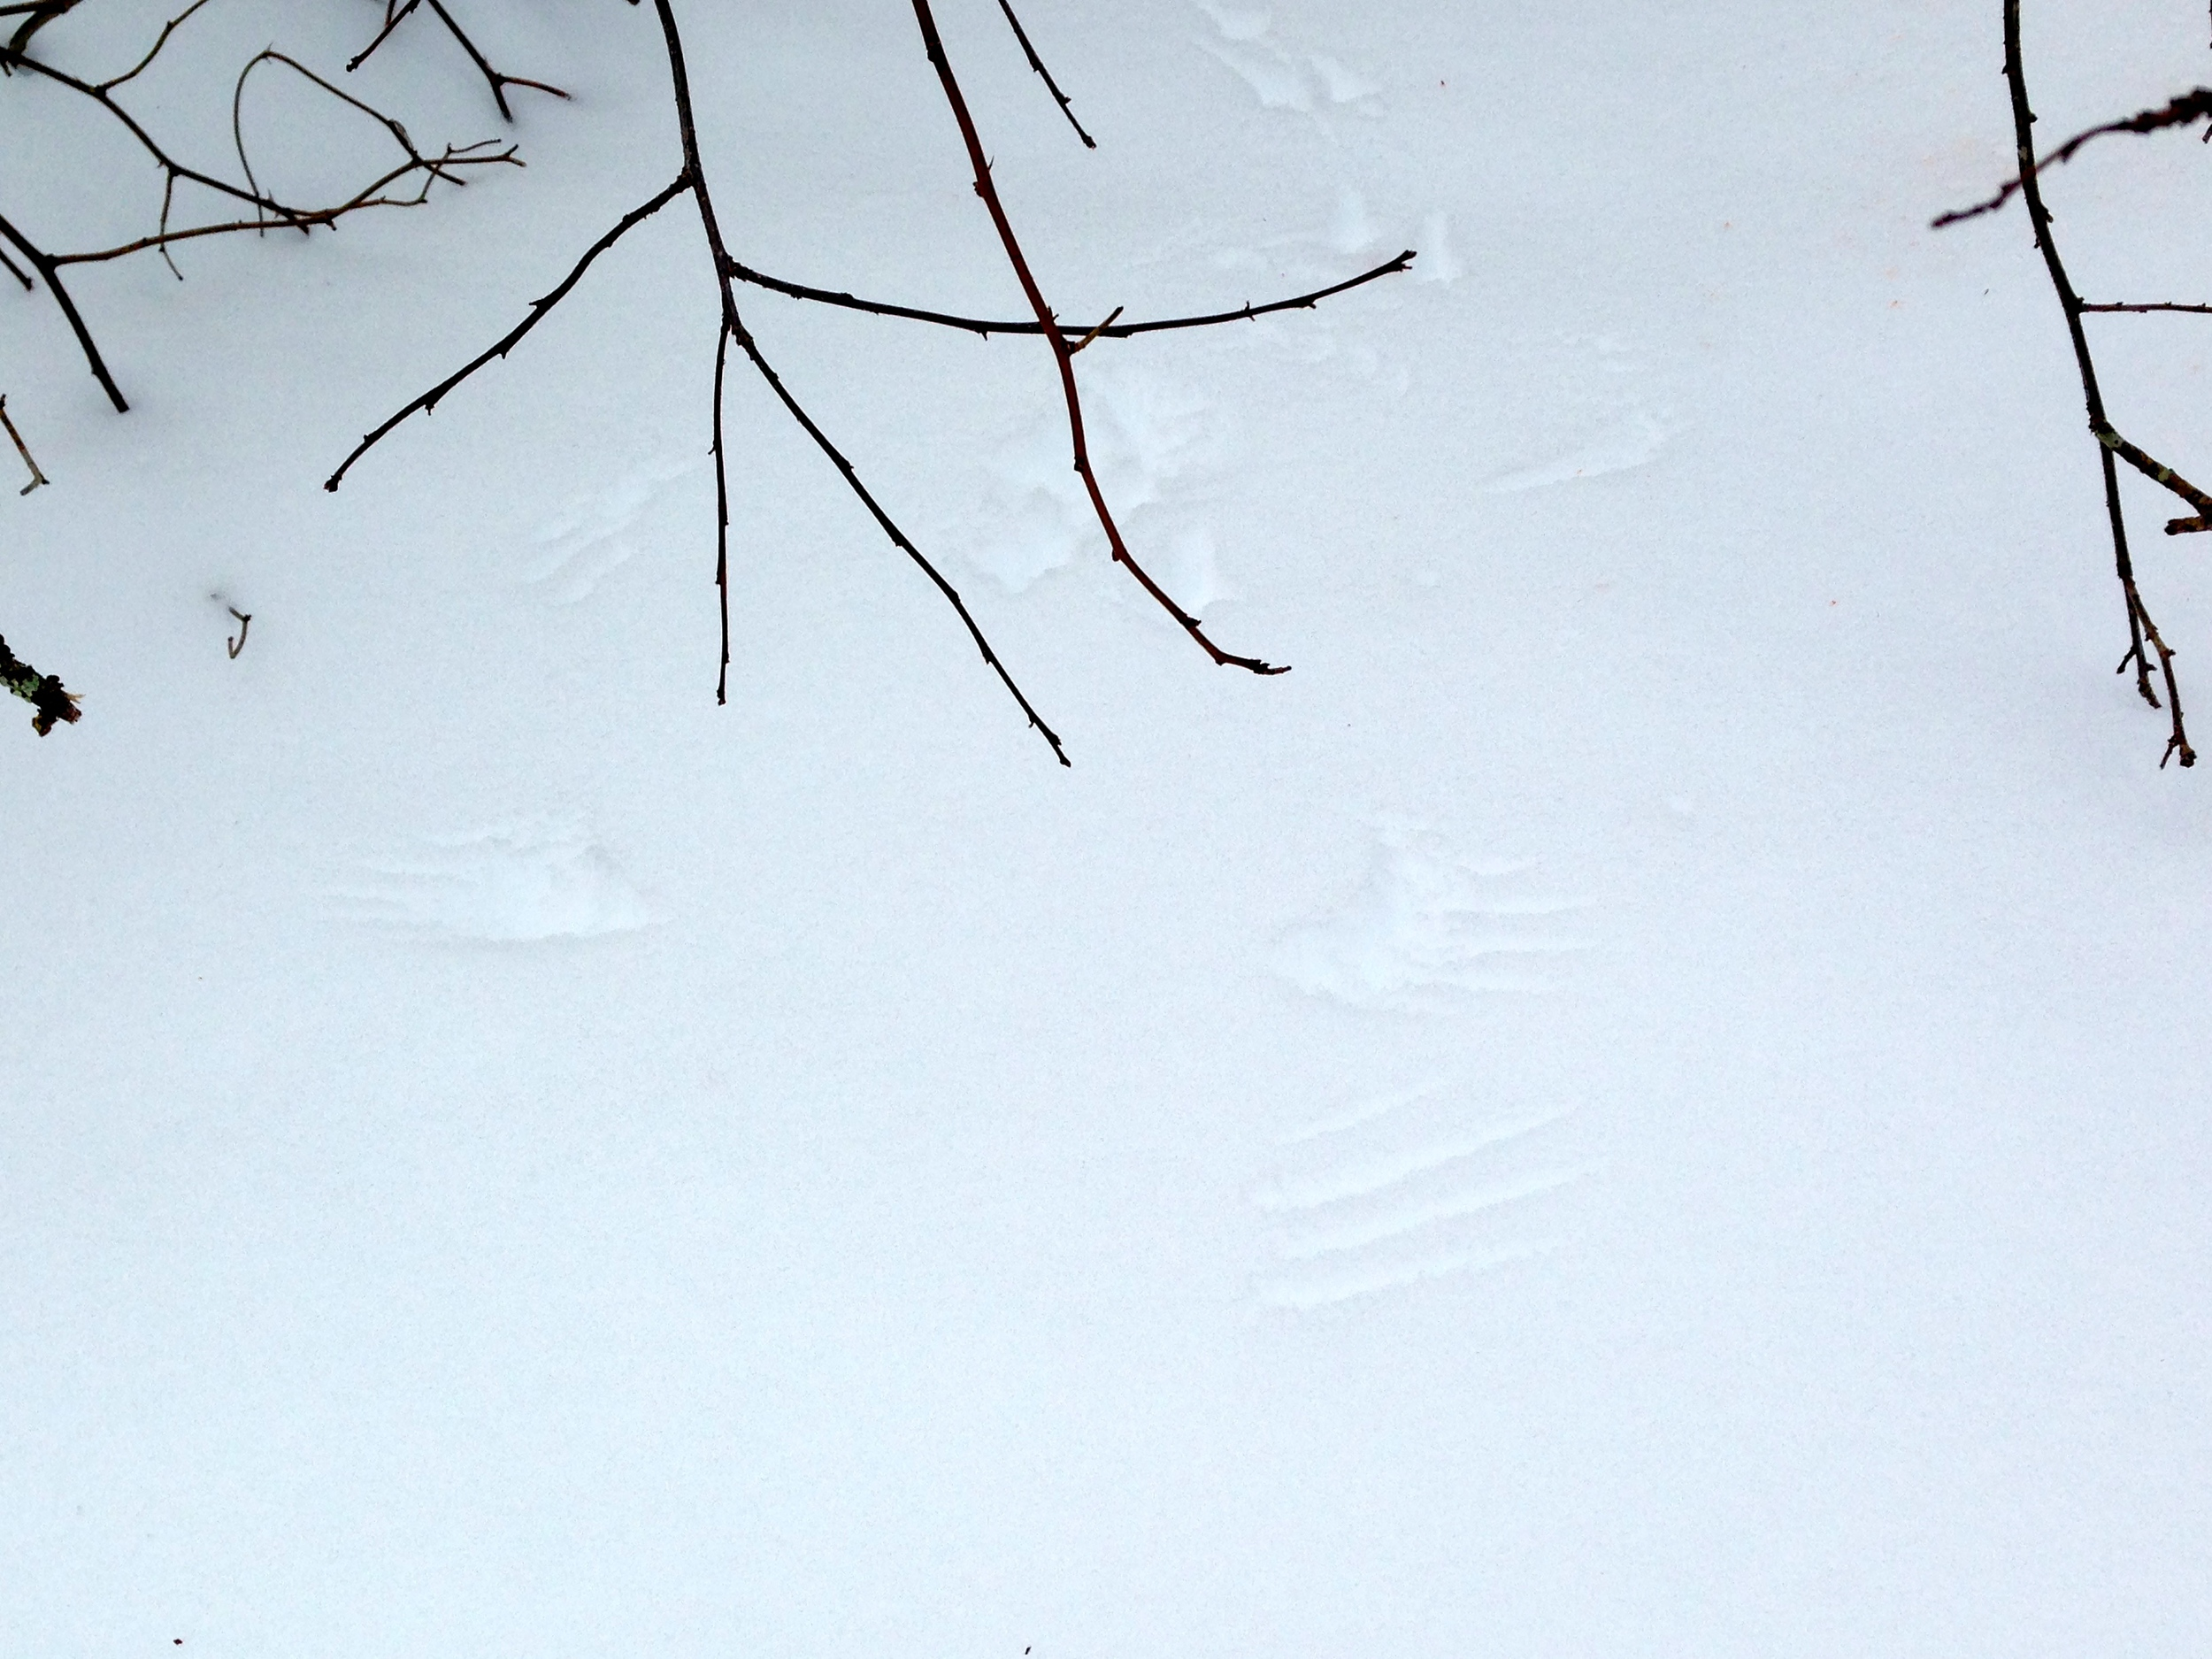 Raptor wing prints (center) intersect the trail of a small rodent, likely a mouse (top of page)